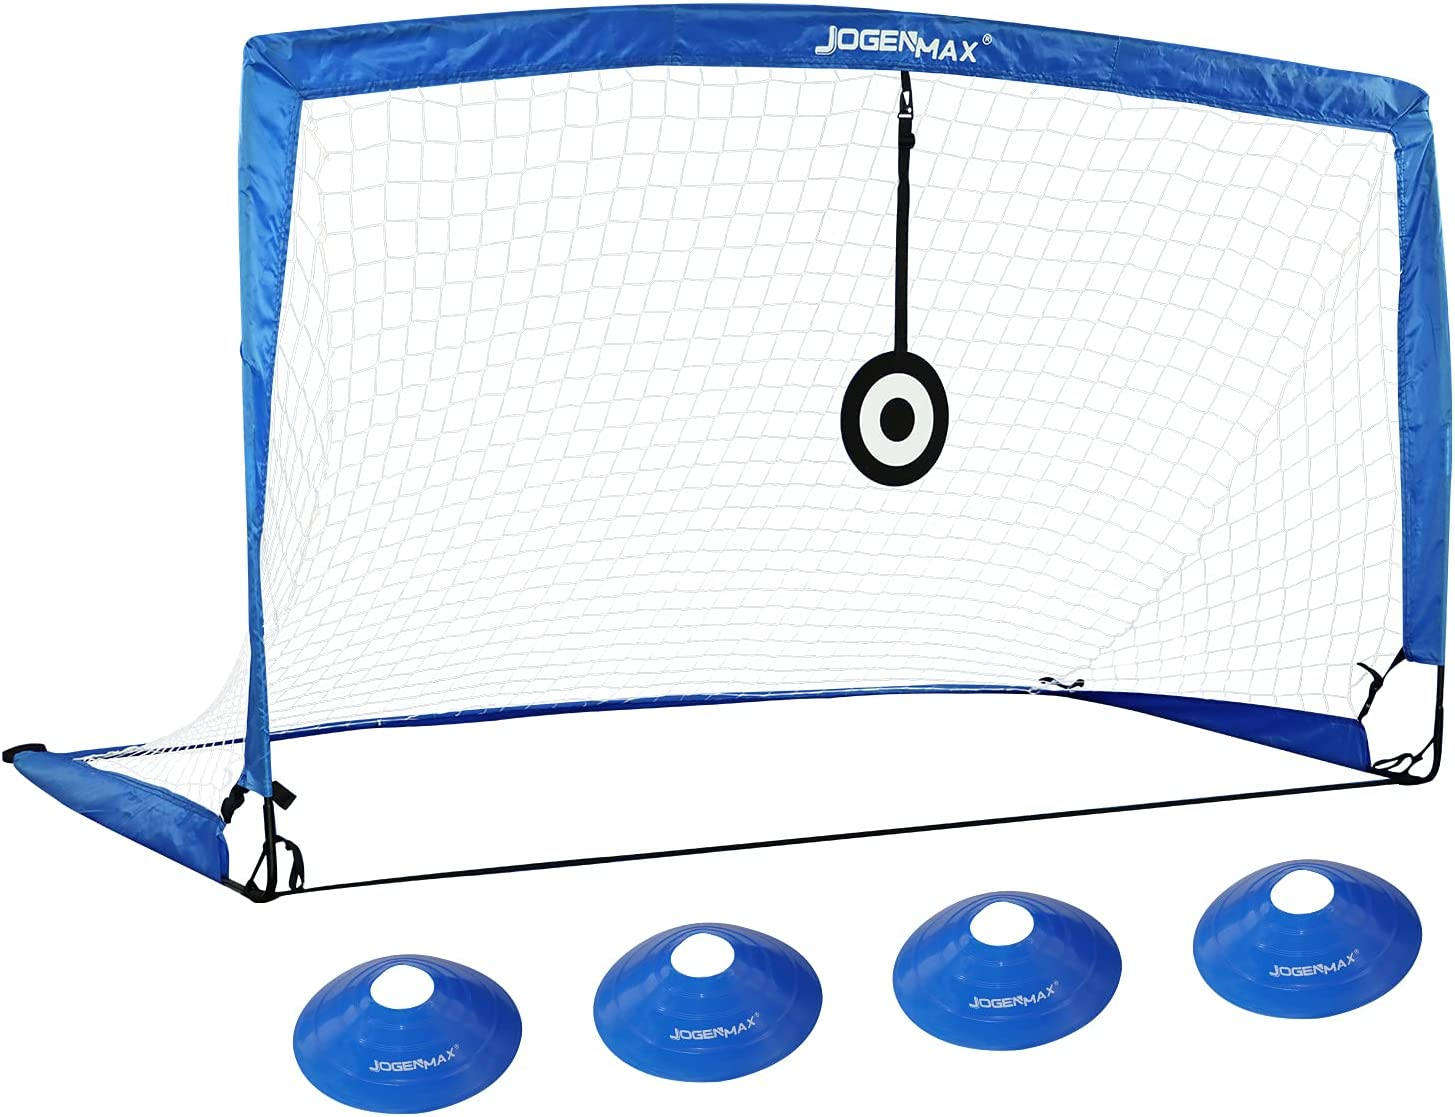 JOGENMAX Portable Soccer Goal, Pop-Up Soccer Goal Net with Aim Target, 1PCS, with Agility Training Cones, Indoor or Outdoor Soccer Goal Gift for Teen Boy Kids Adults Size 6'X3'X3'